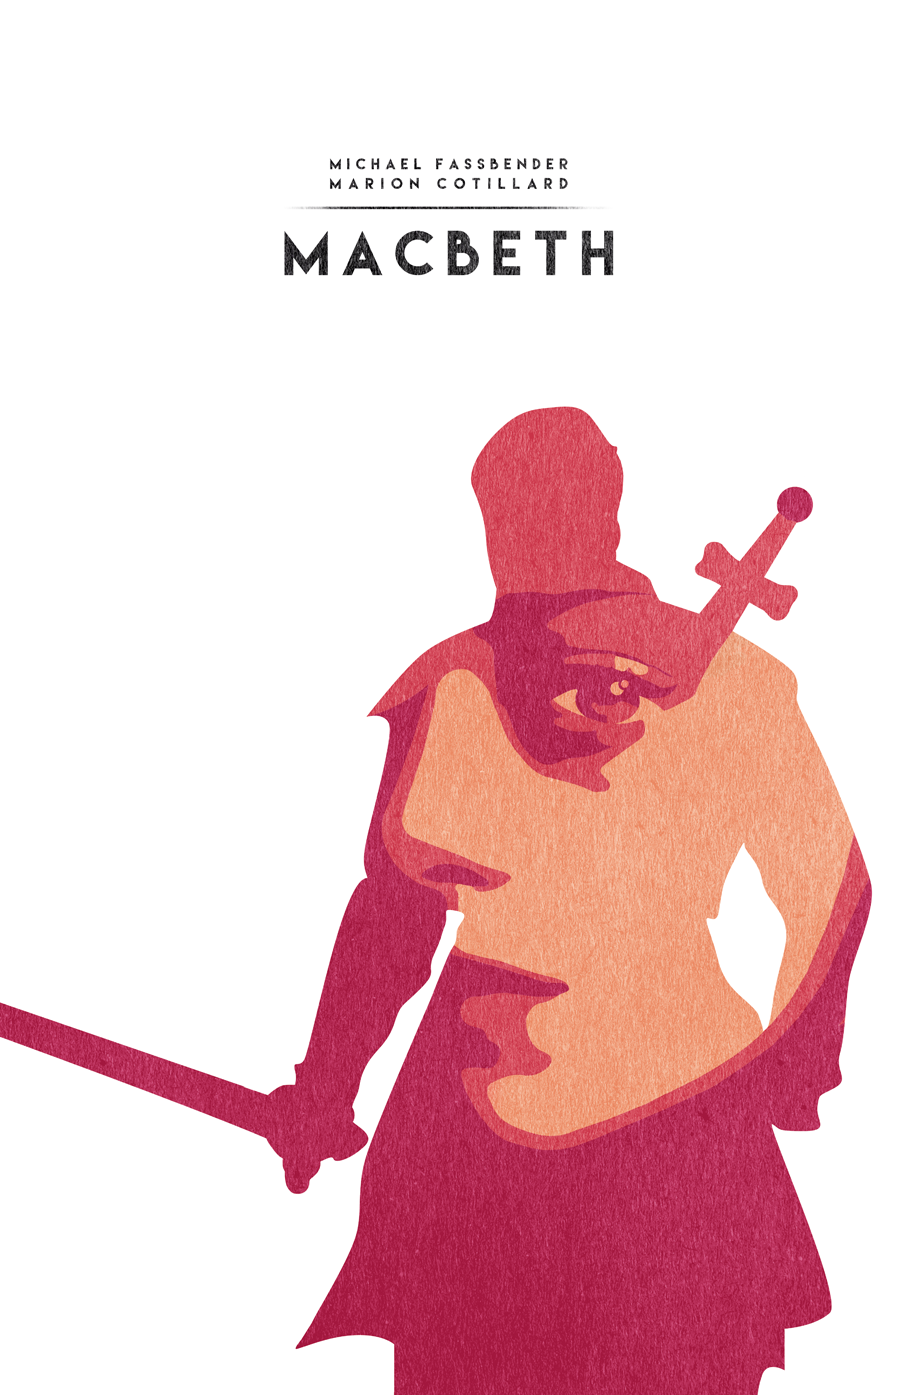 parallels between macduff and macbeth essay